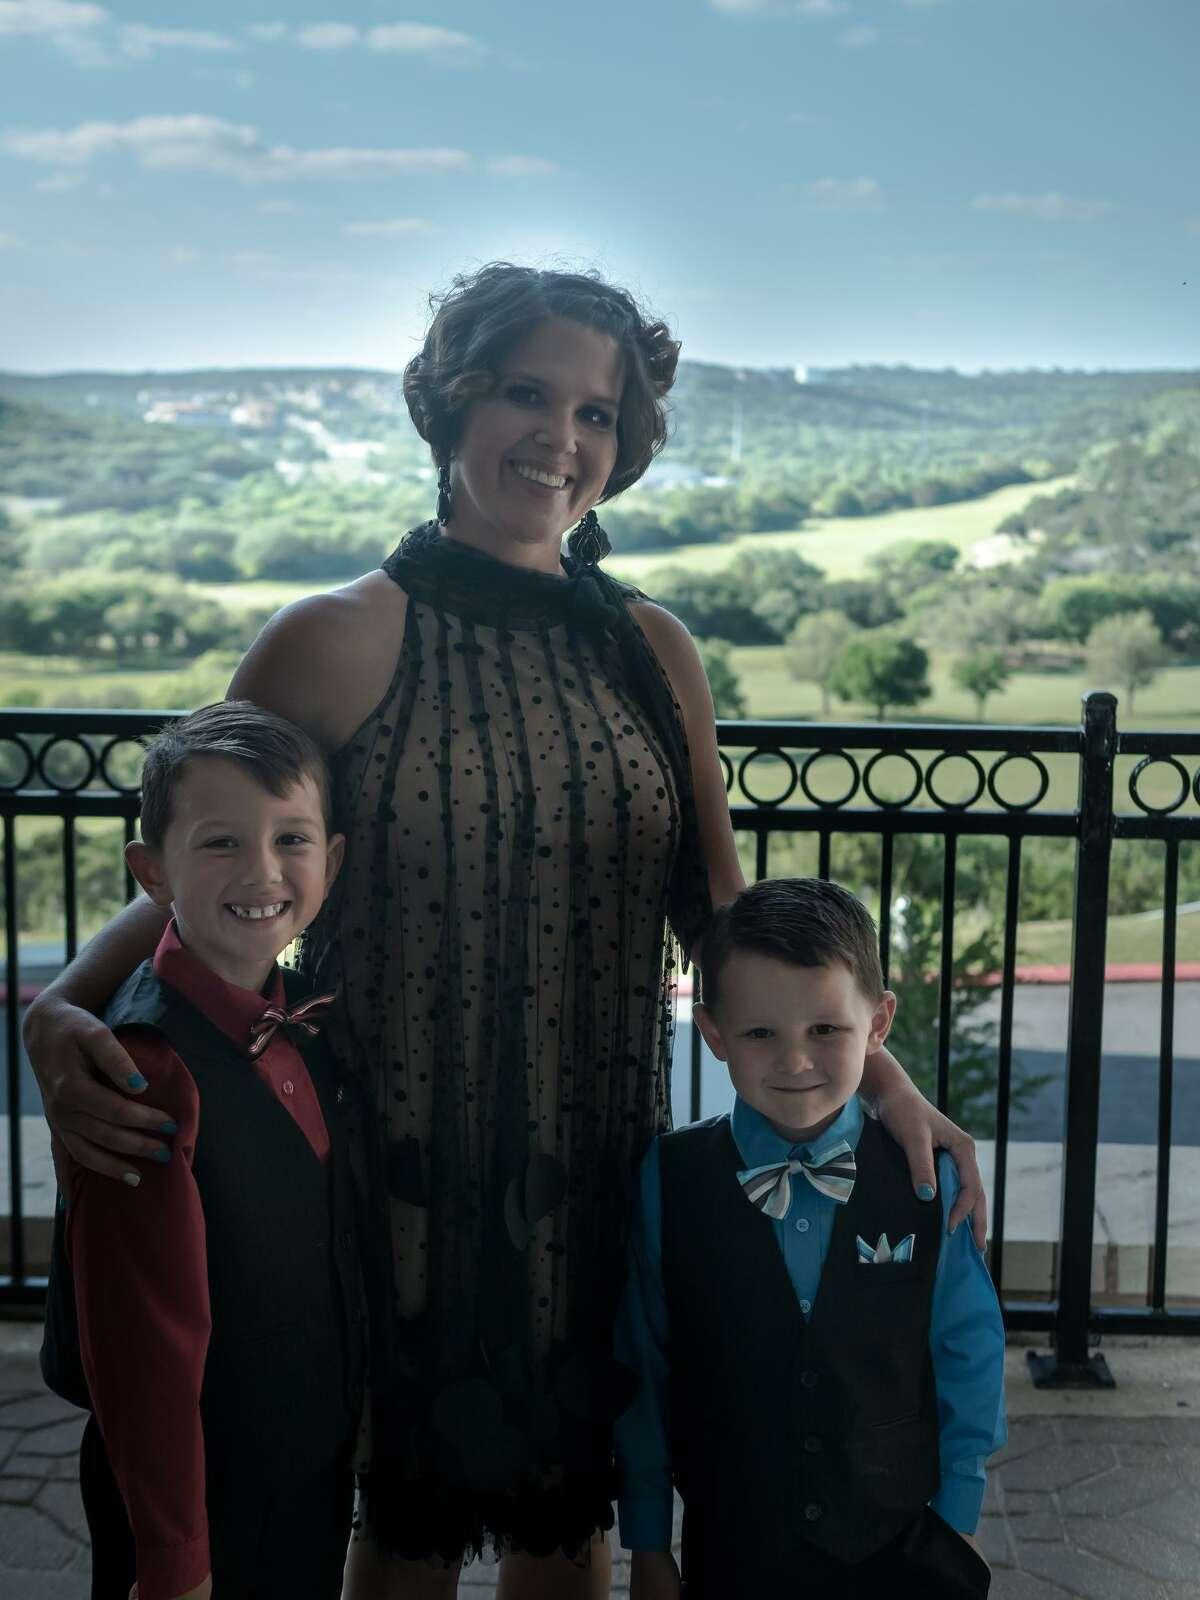 Marsha Mudge is shown with her sons, Tanner and Jackson. Mudge's husband, John Mudge, was a coach at New Braunfels High School. He died a year after having a stroke. The American Heart Association said it has donated CPR equipment to the high school in his honor.